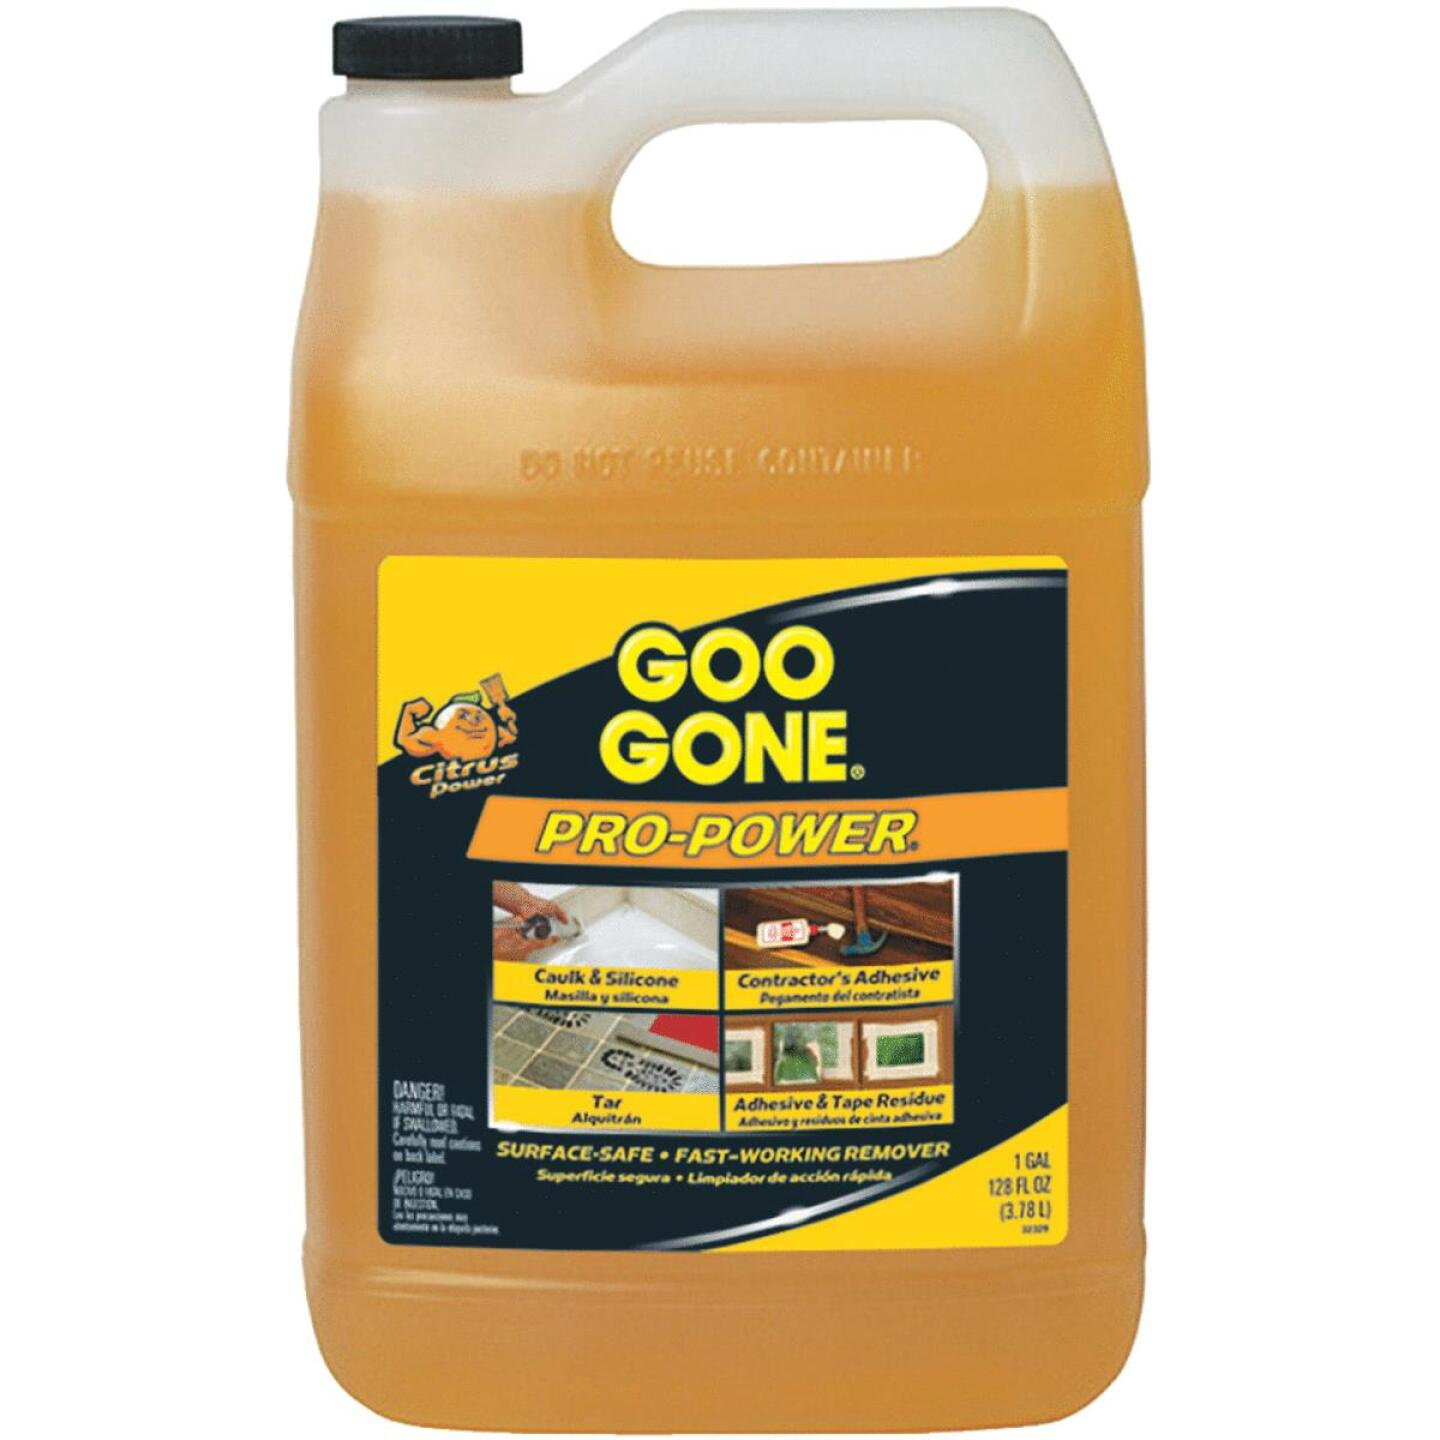 Goo Gone 1 Gal. Pro-Power Adhesive Remover Image 314